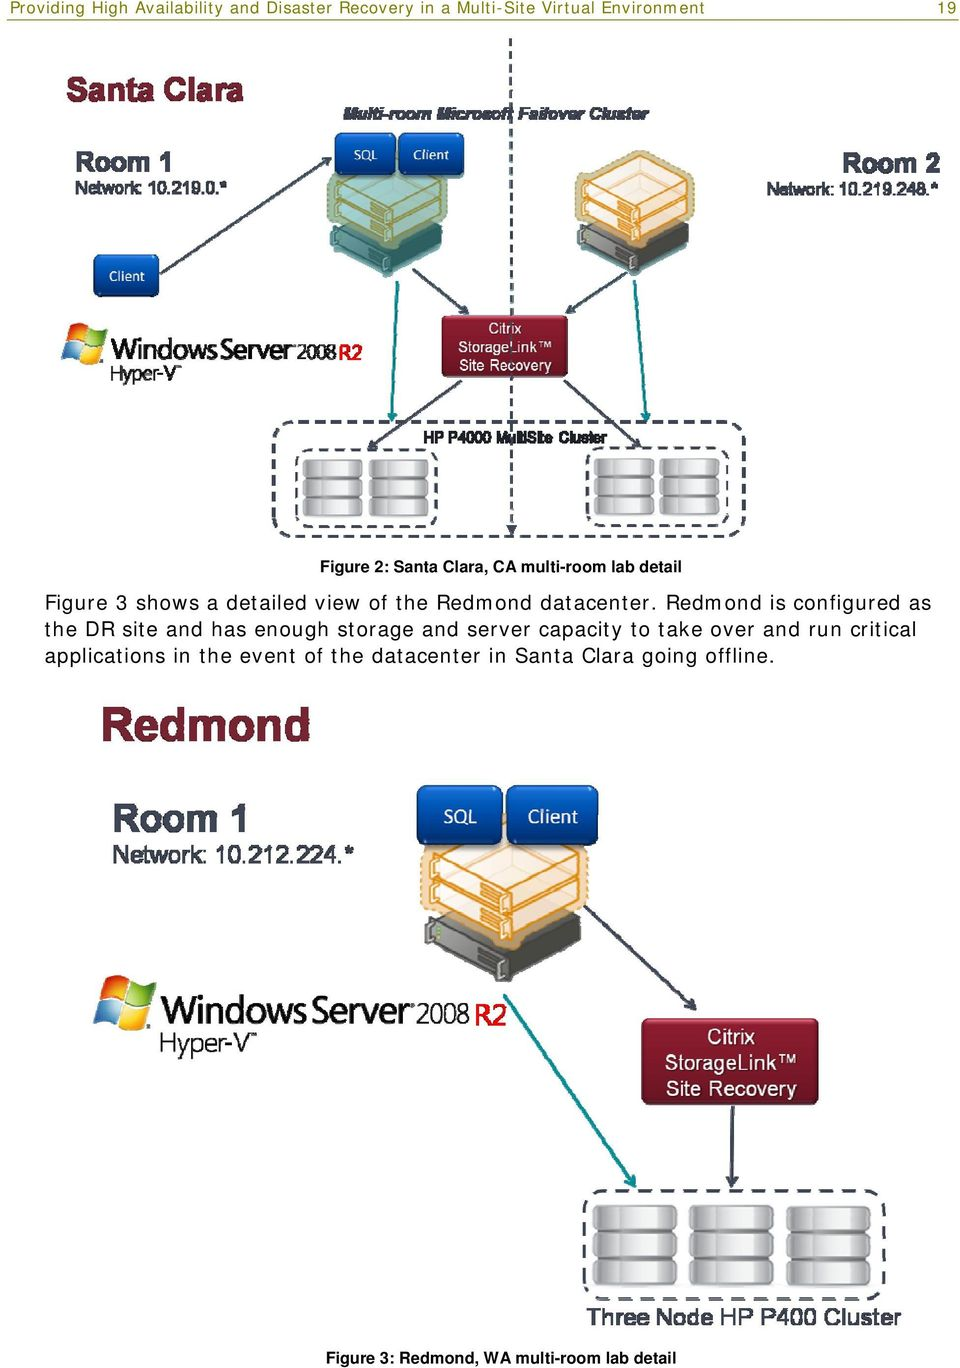 Redmond is configured as the DR site and has enough storage and server capacity to take over and run